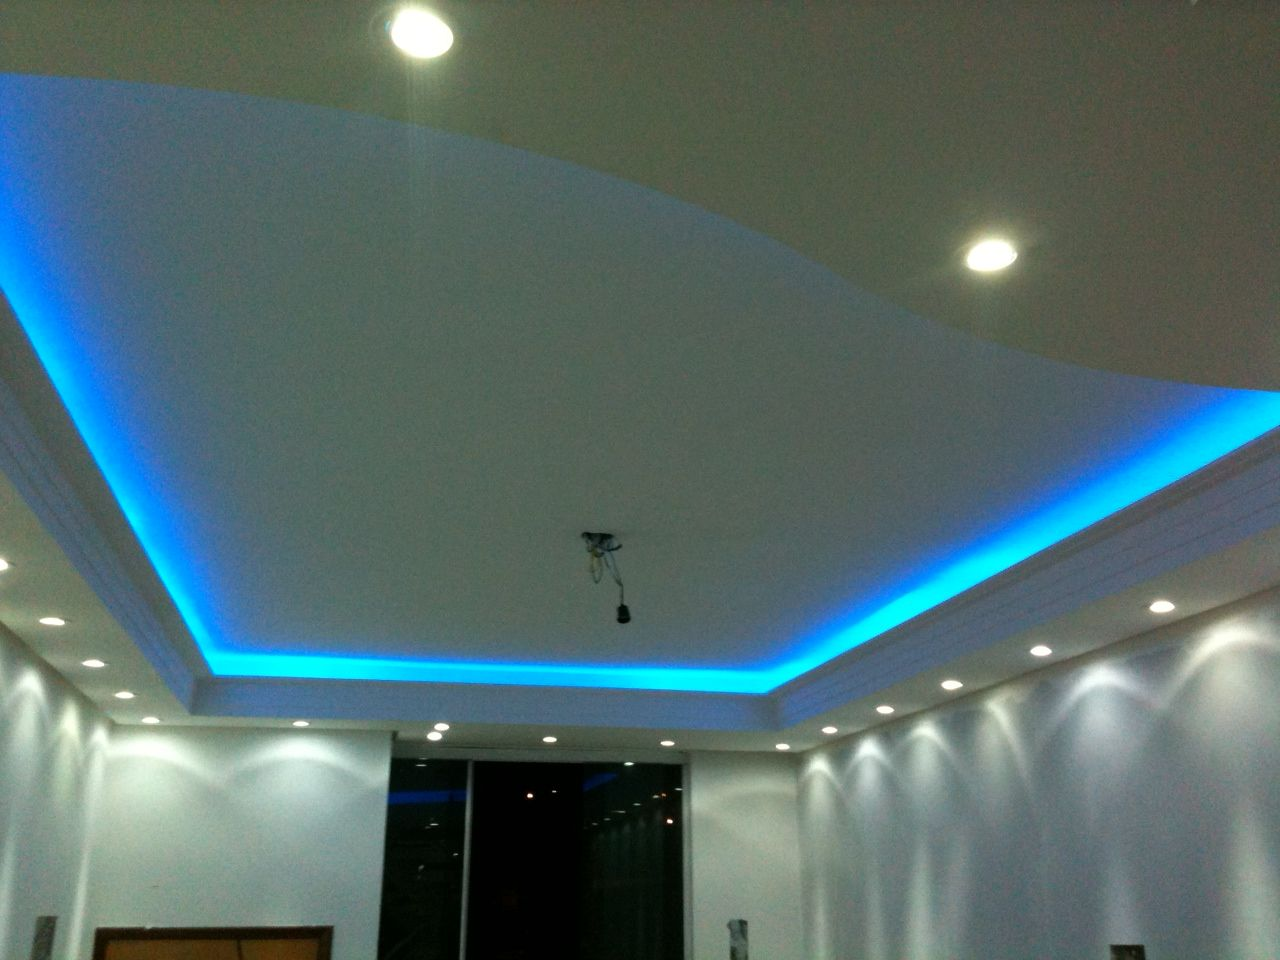 Sanca com led azul